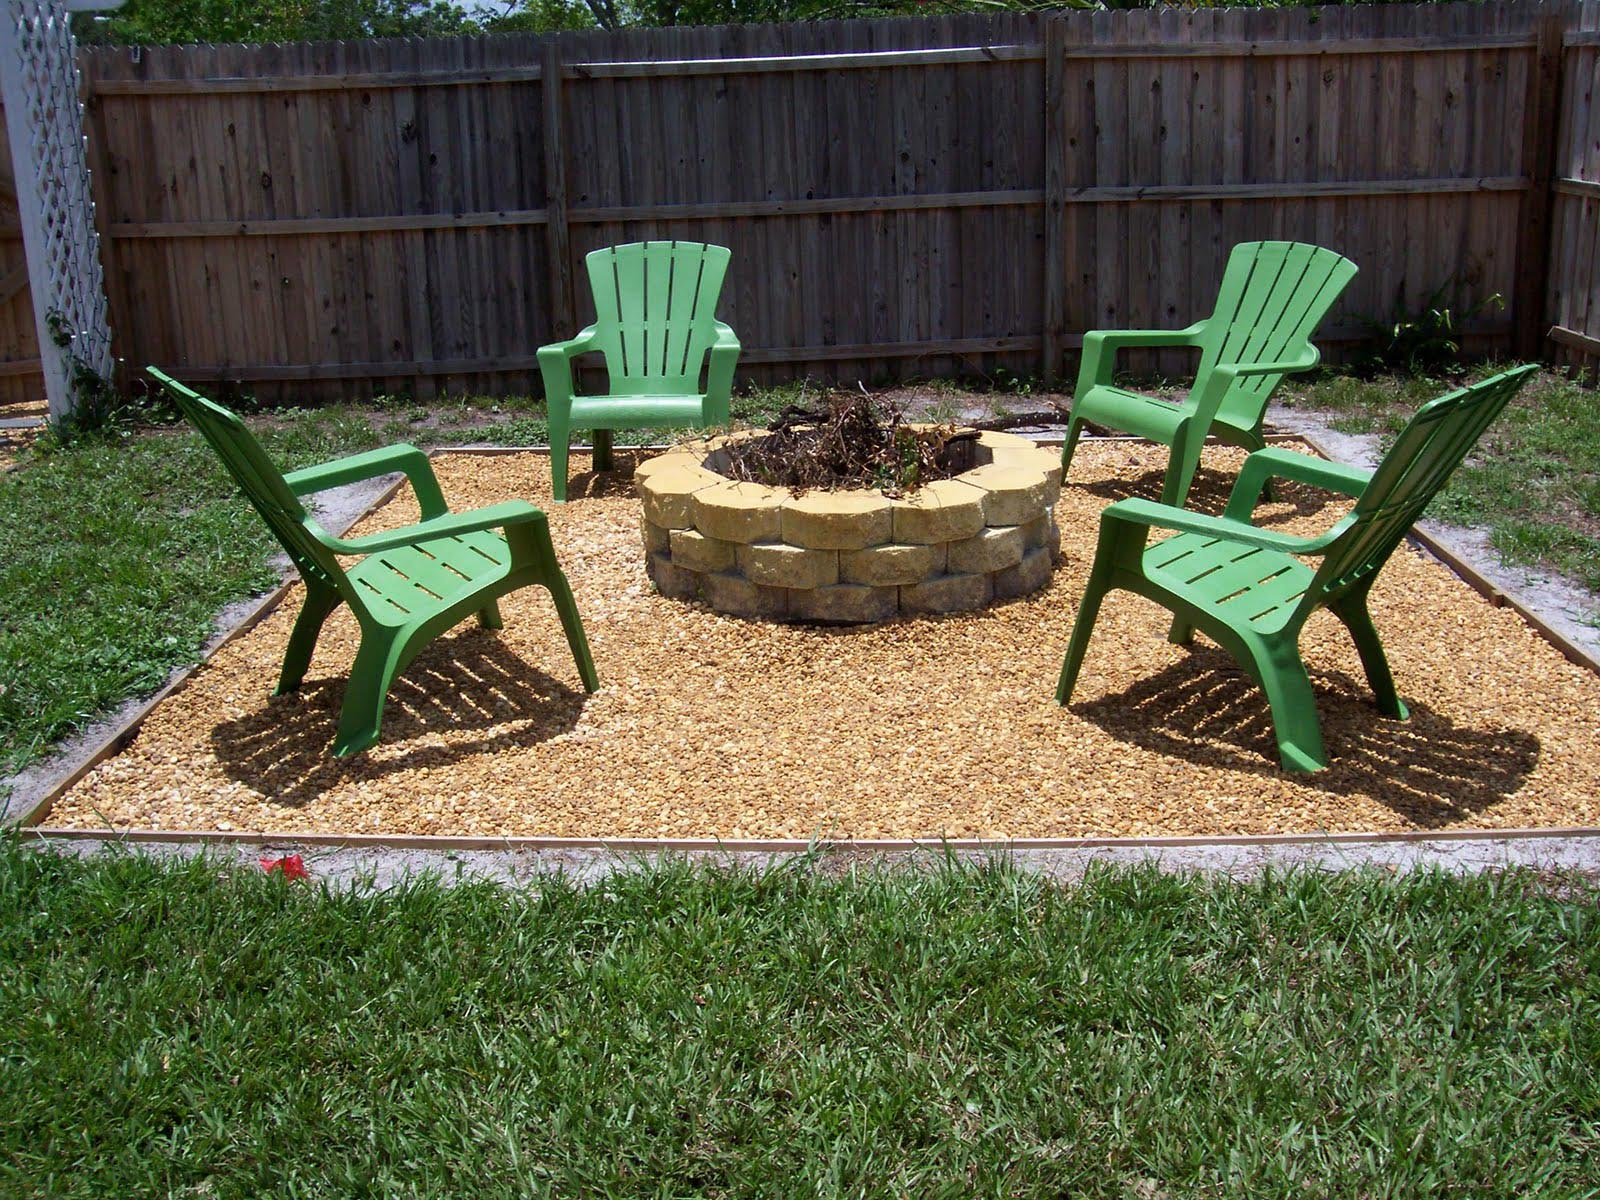 Backyard patio ideas for small spaces - Outdoor Fire Pit Patio Ideas Elegant Patio Ideas With Firepit 17 Best Ideas About Patio Fire